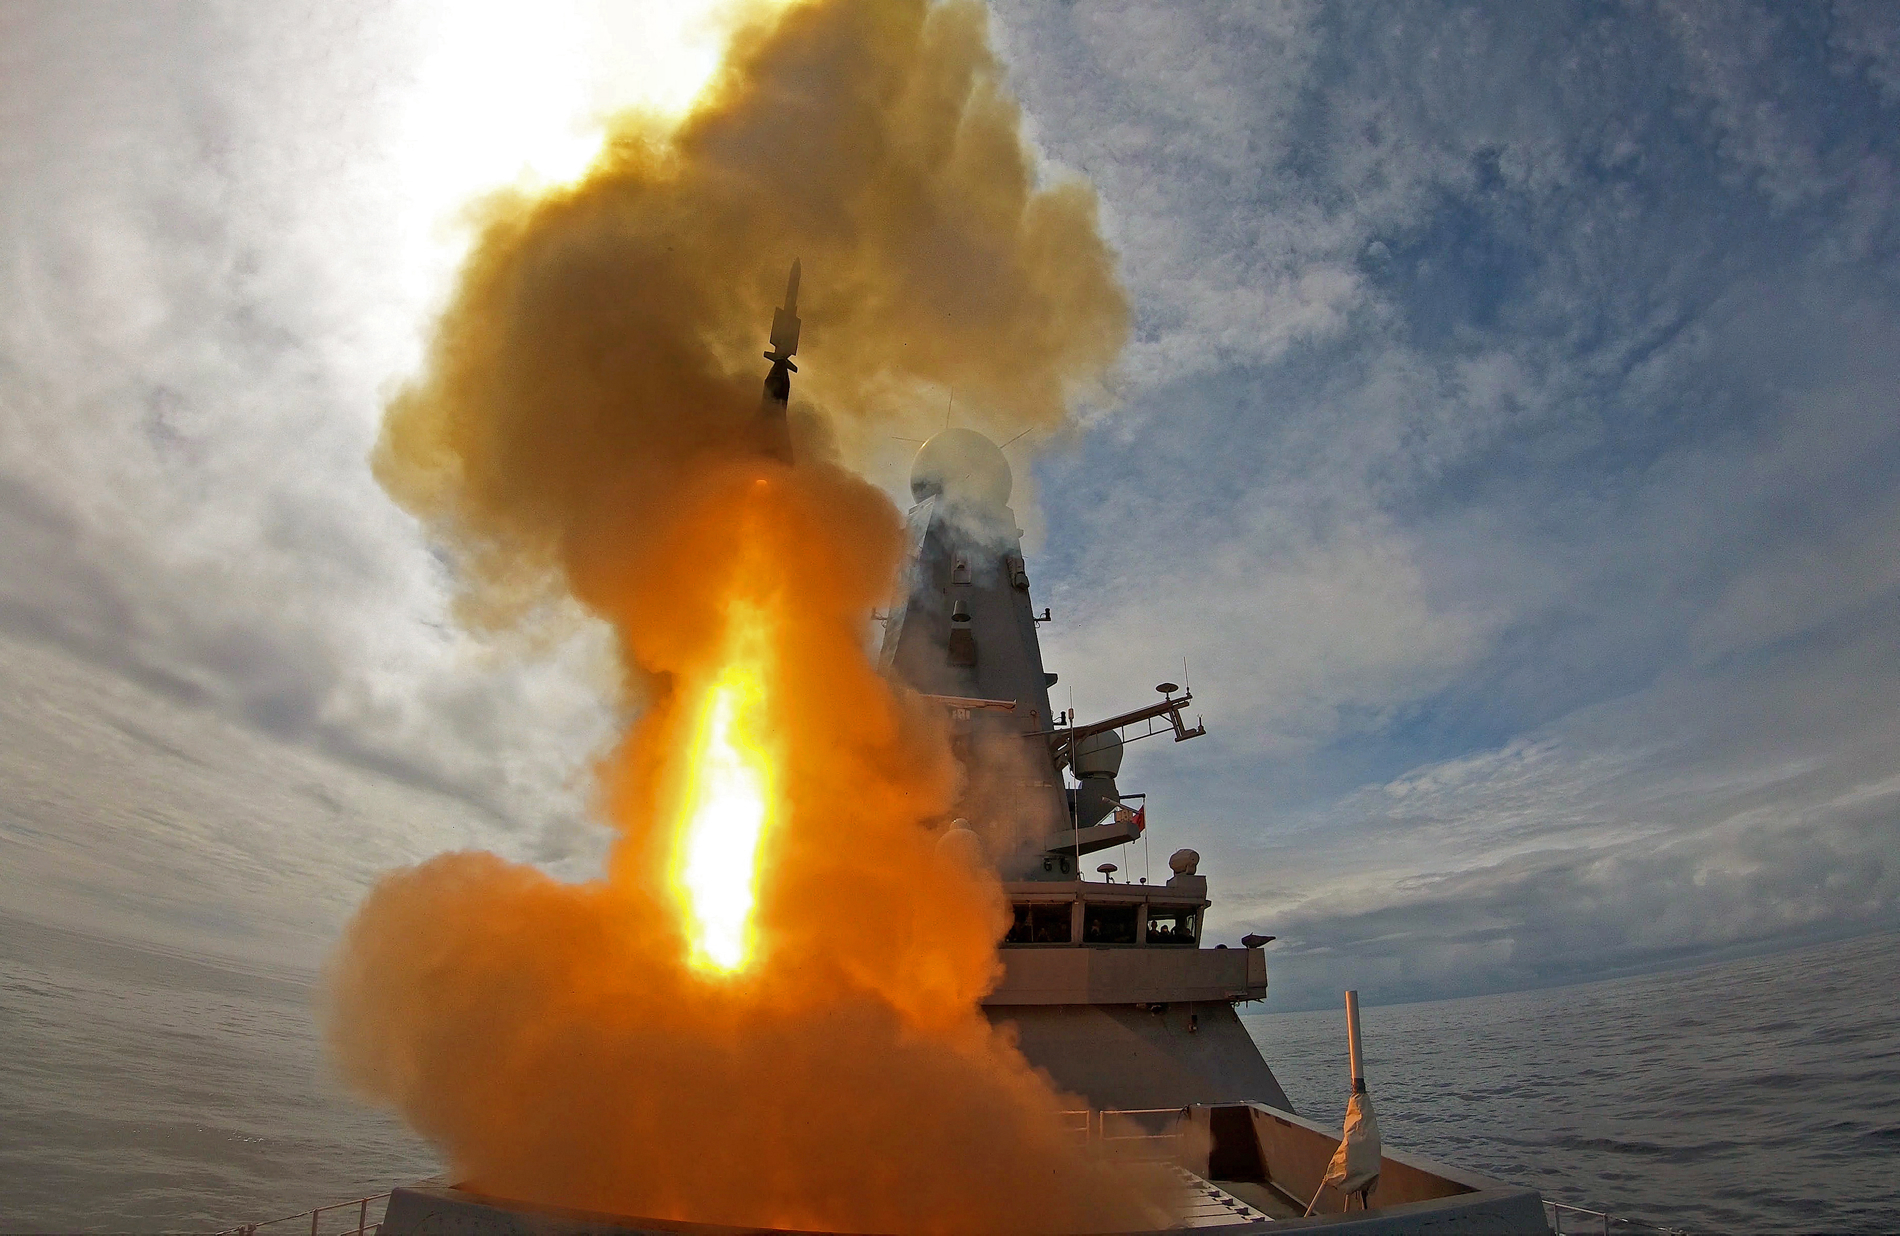 SDE continue to provide Type 45 Explosive Safety Support